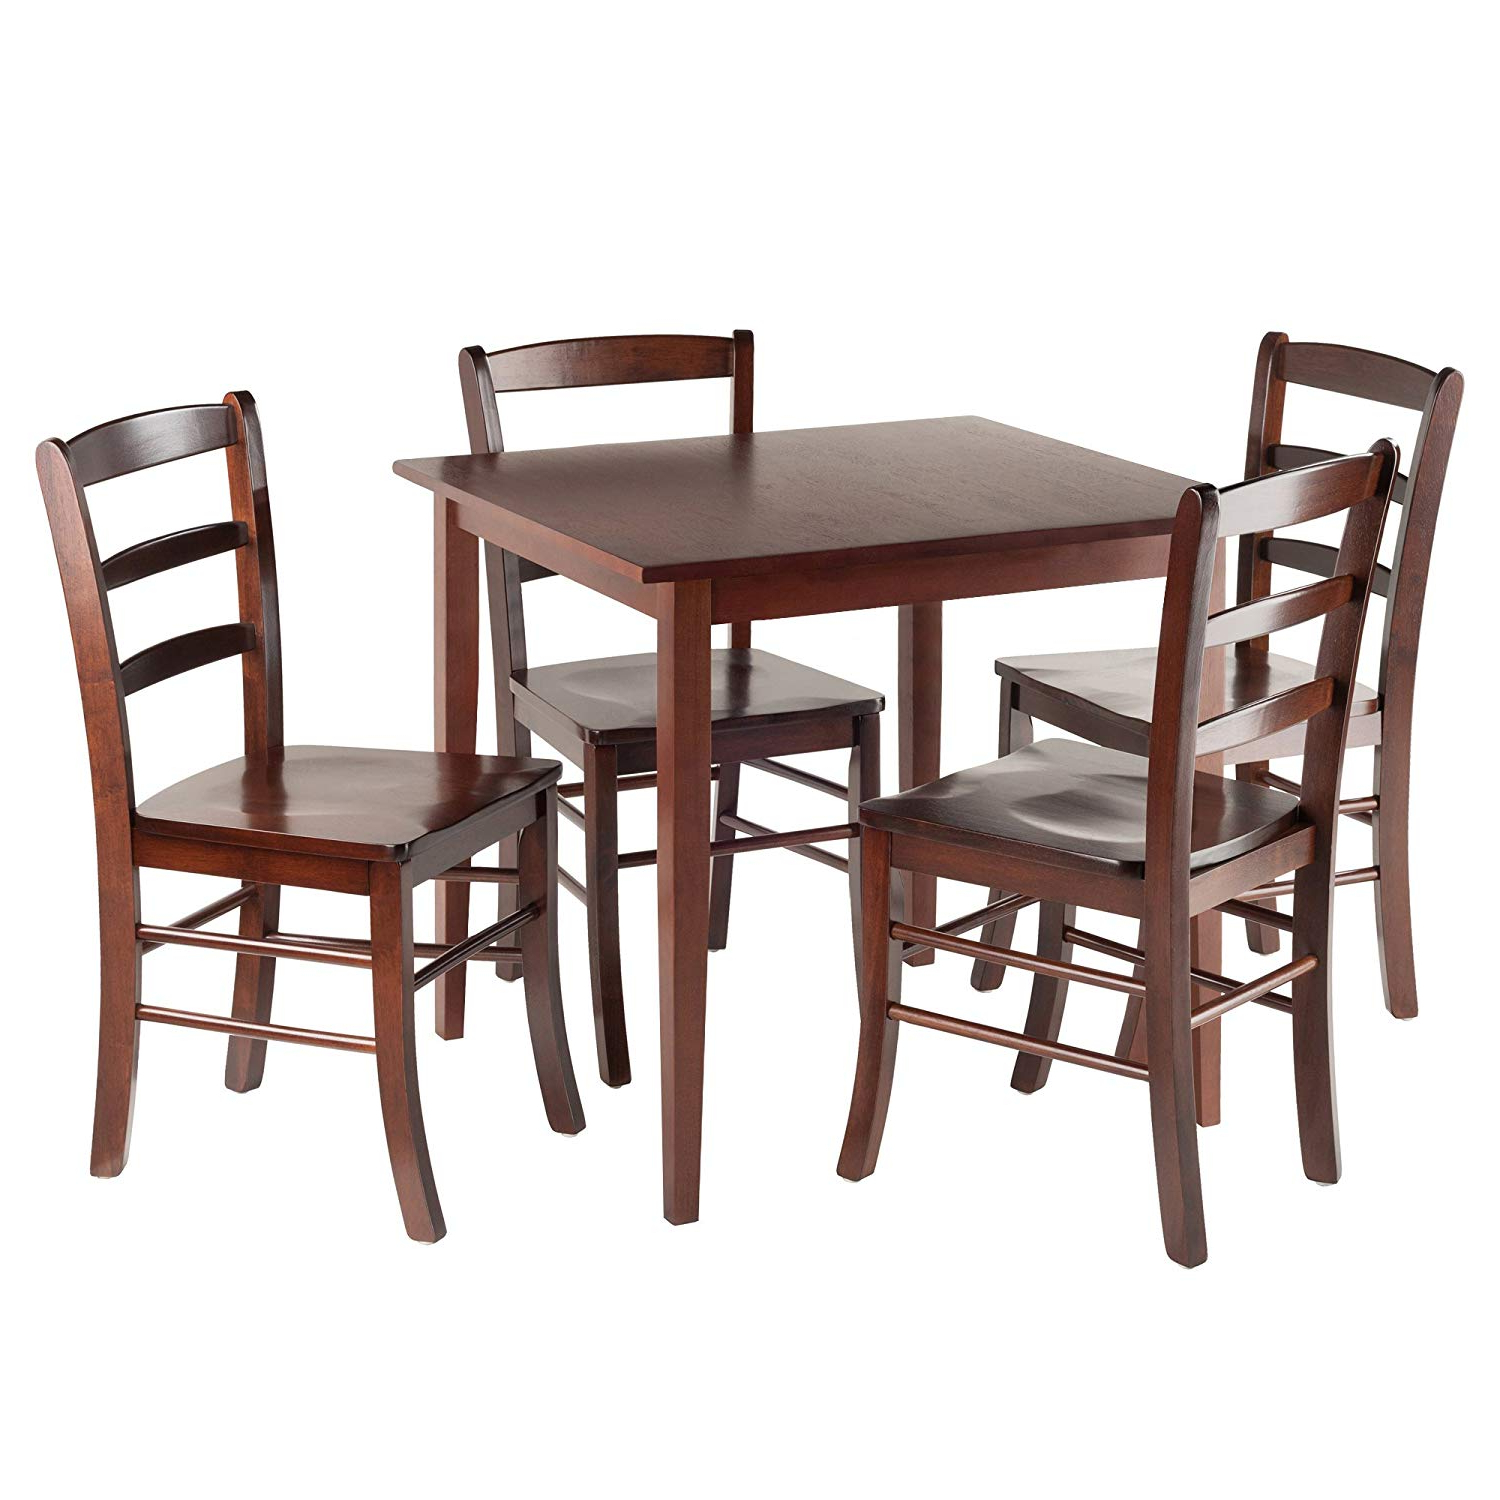 Walnut And Antique White Finish Contemporary Country Dining Tables Within Most Recent Winsome Groveland Square Dining Table, 4 Chairs, Antique Walnut (View 12 of 25)